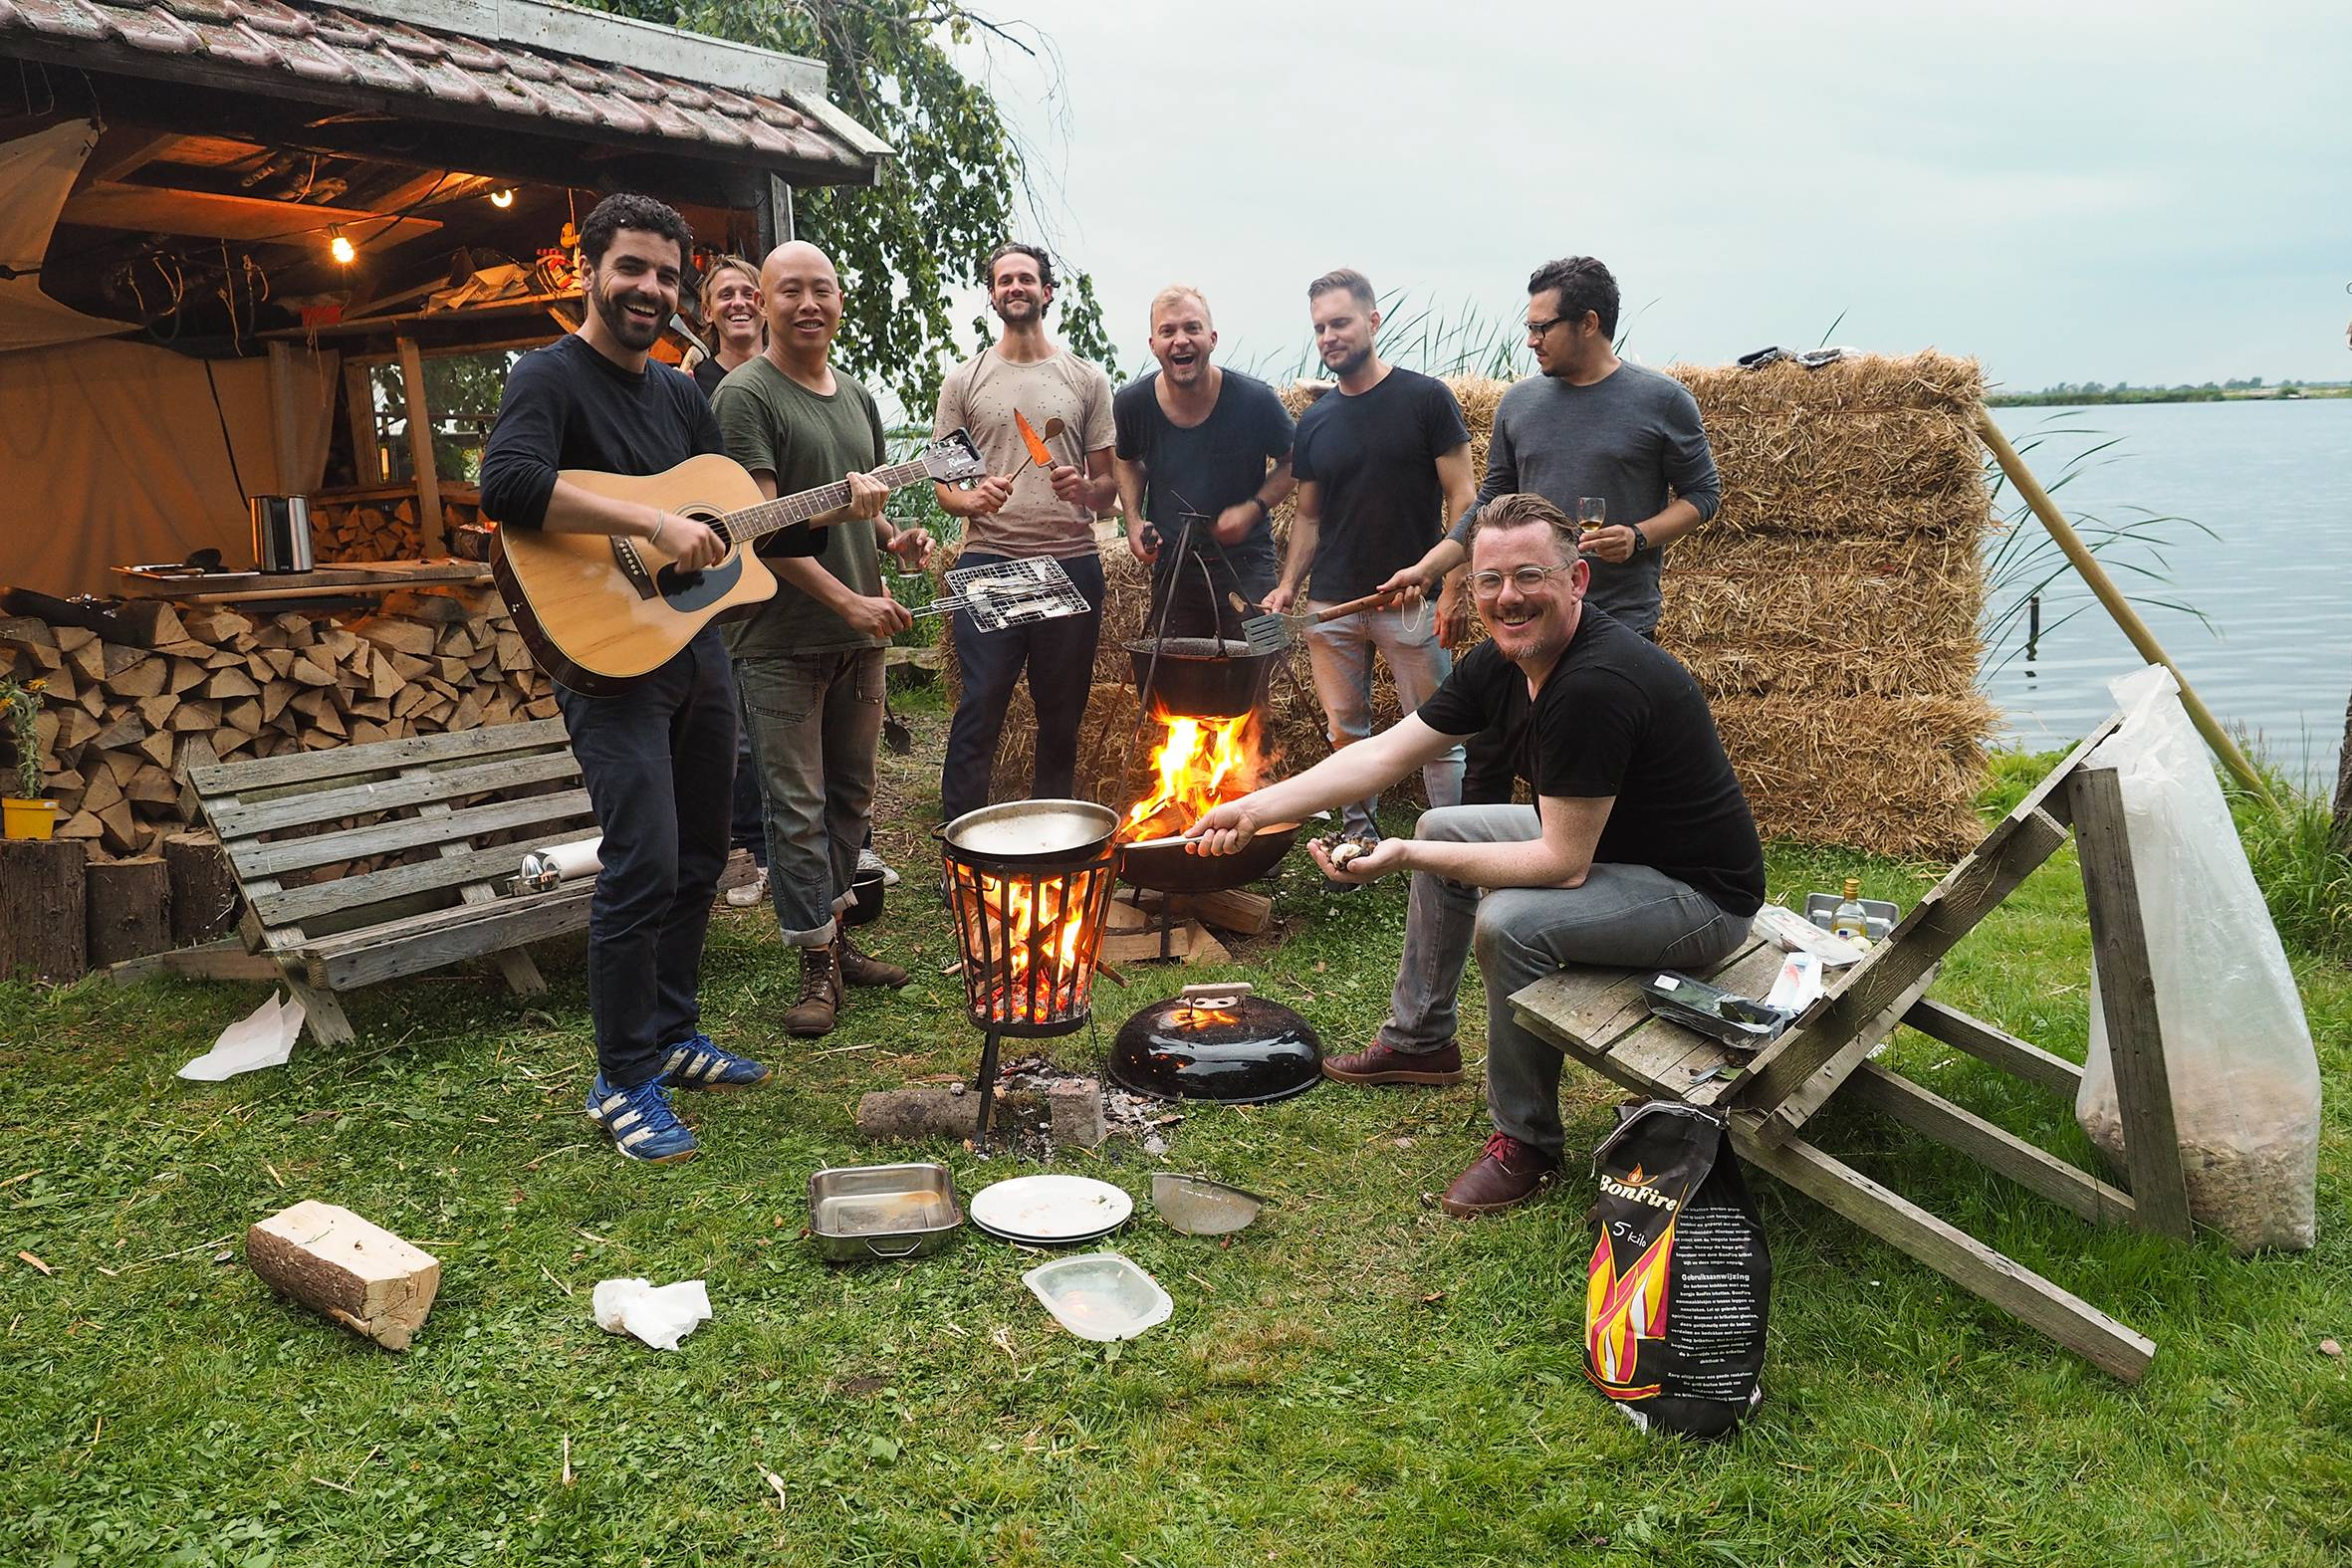 kookworkshop -into the wild cooking - wild koken -workshop koken op vuur -slow adventure -experiencewaterland -menuplank - paking roken -zalm roken -dutch cooking course - cooking - 1